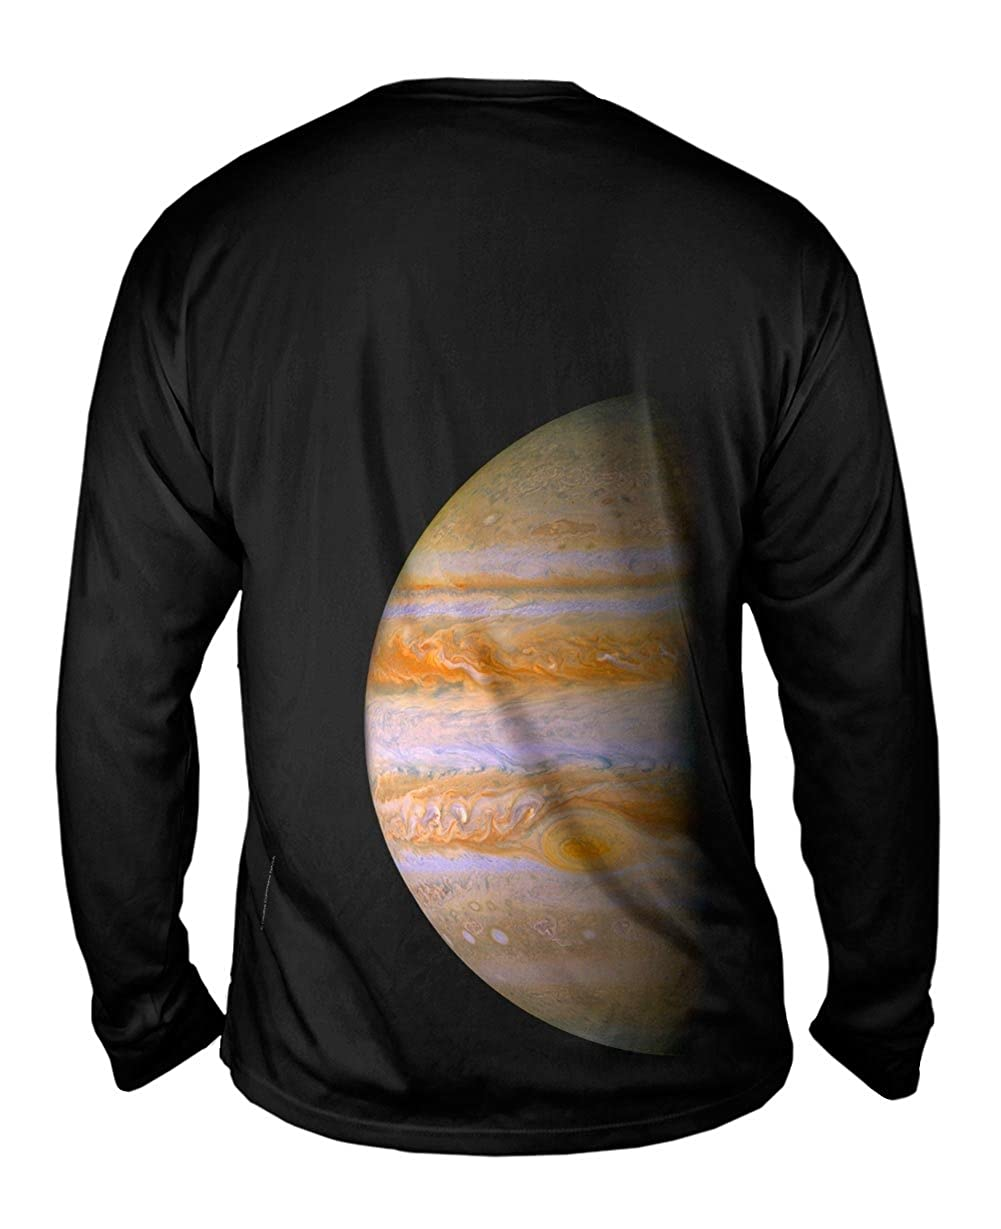 TShirt Yizzam Jupitor Modest Space Mens Long Sleeve